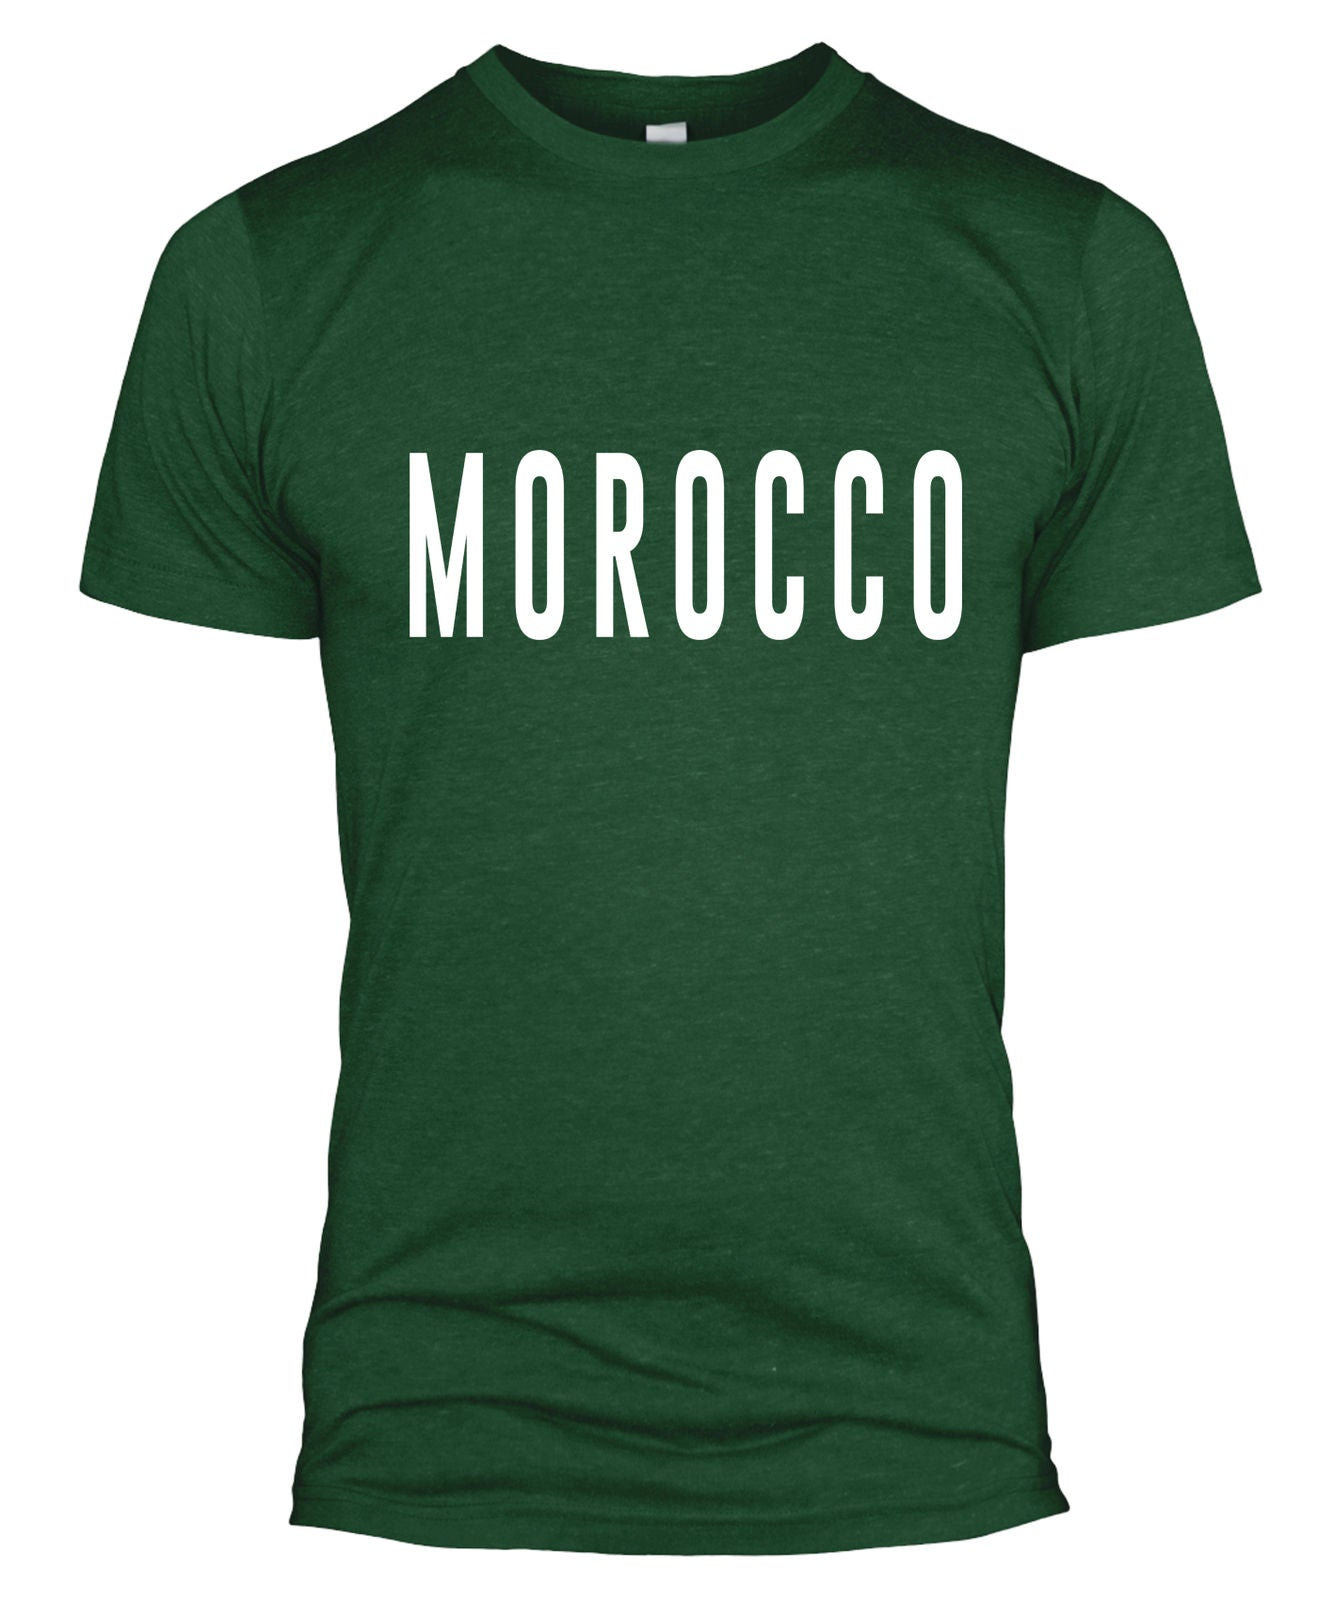 31a39095bf4 Morocco Text T Shirt Football Top Jersey World Cup Retro Supporter Men Lady  L254 - The Clothing Shed